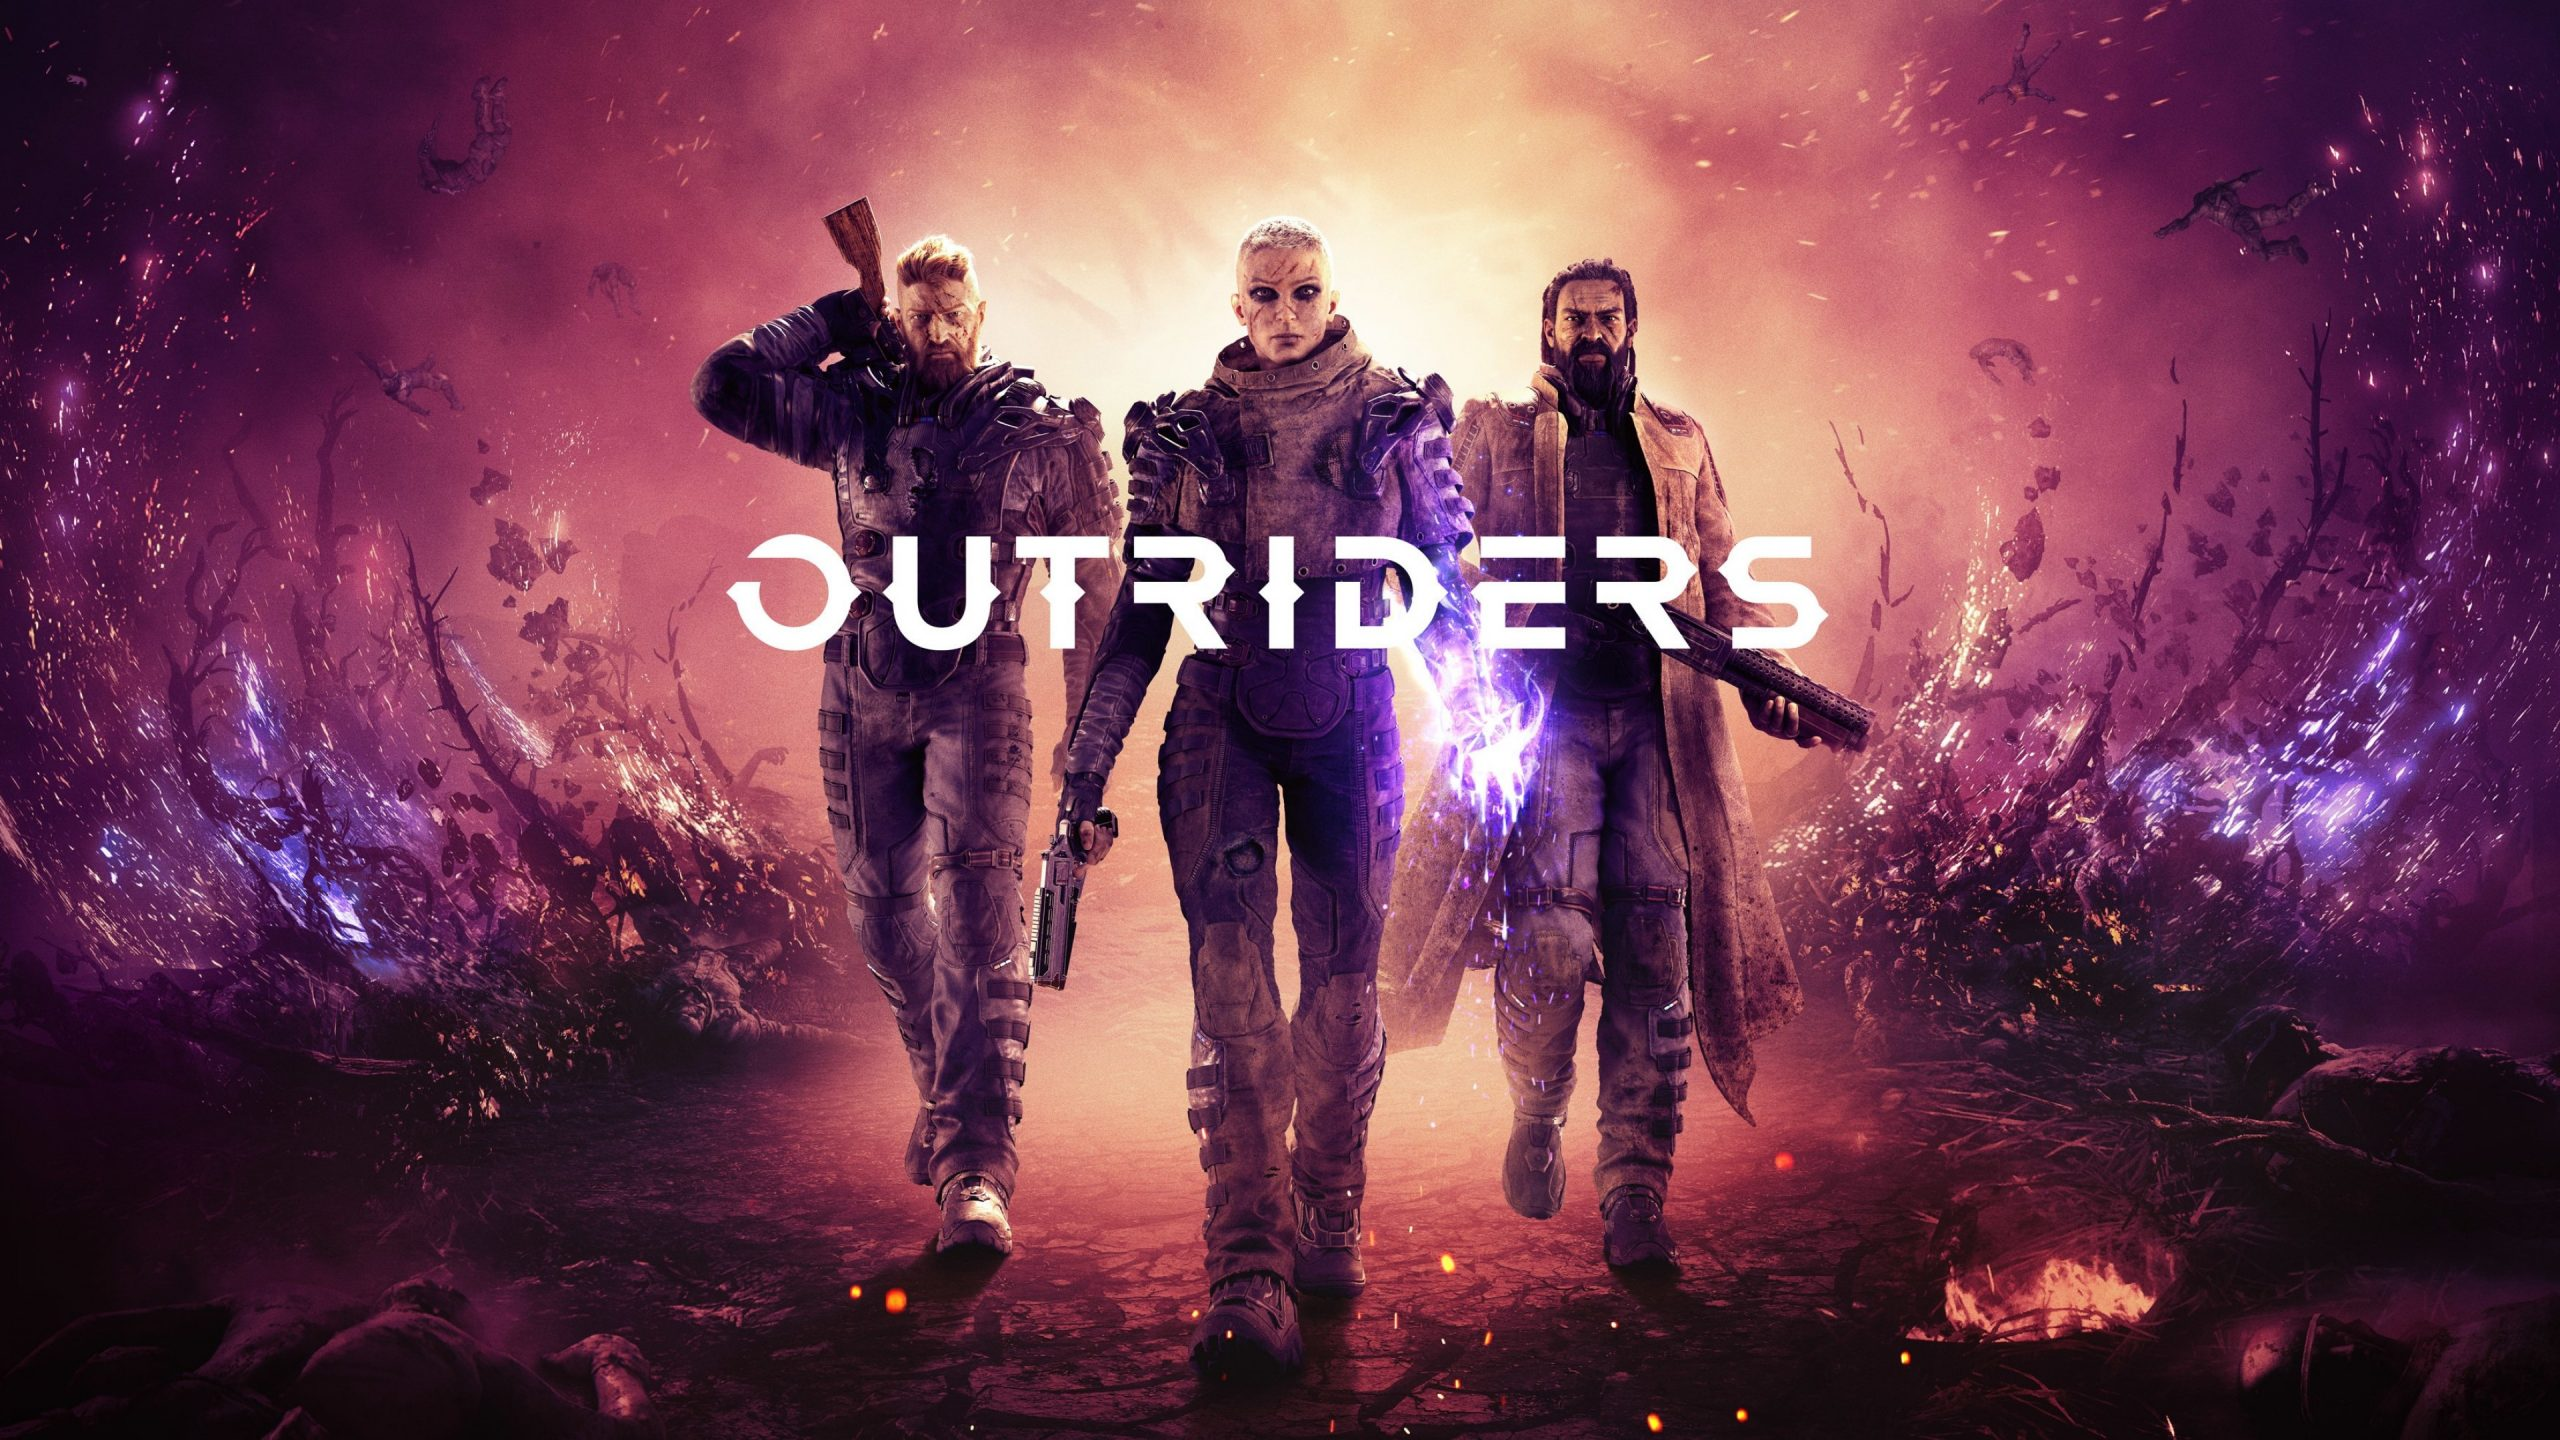 Outriders release date set for February